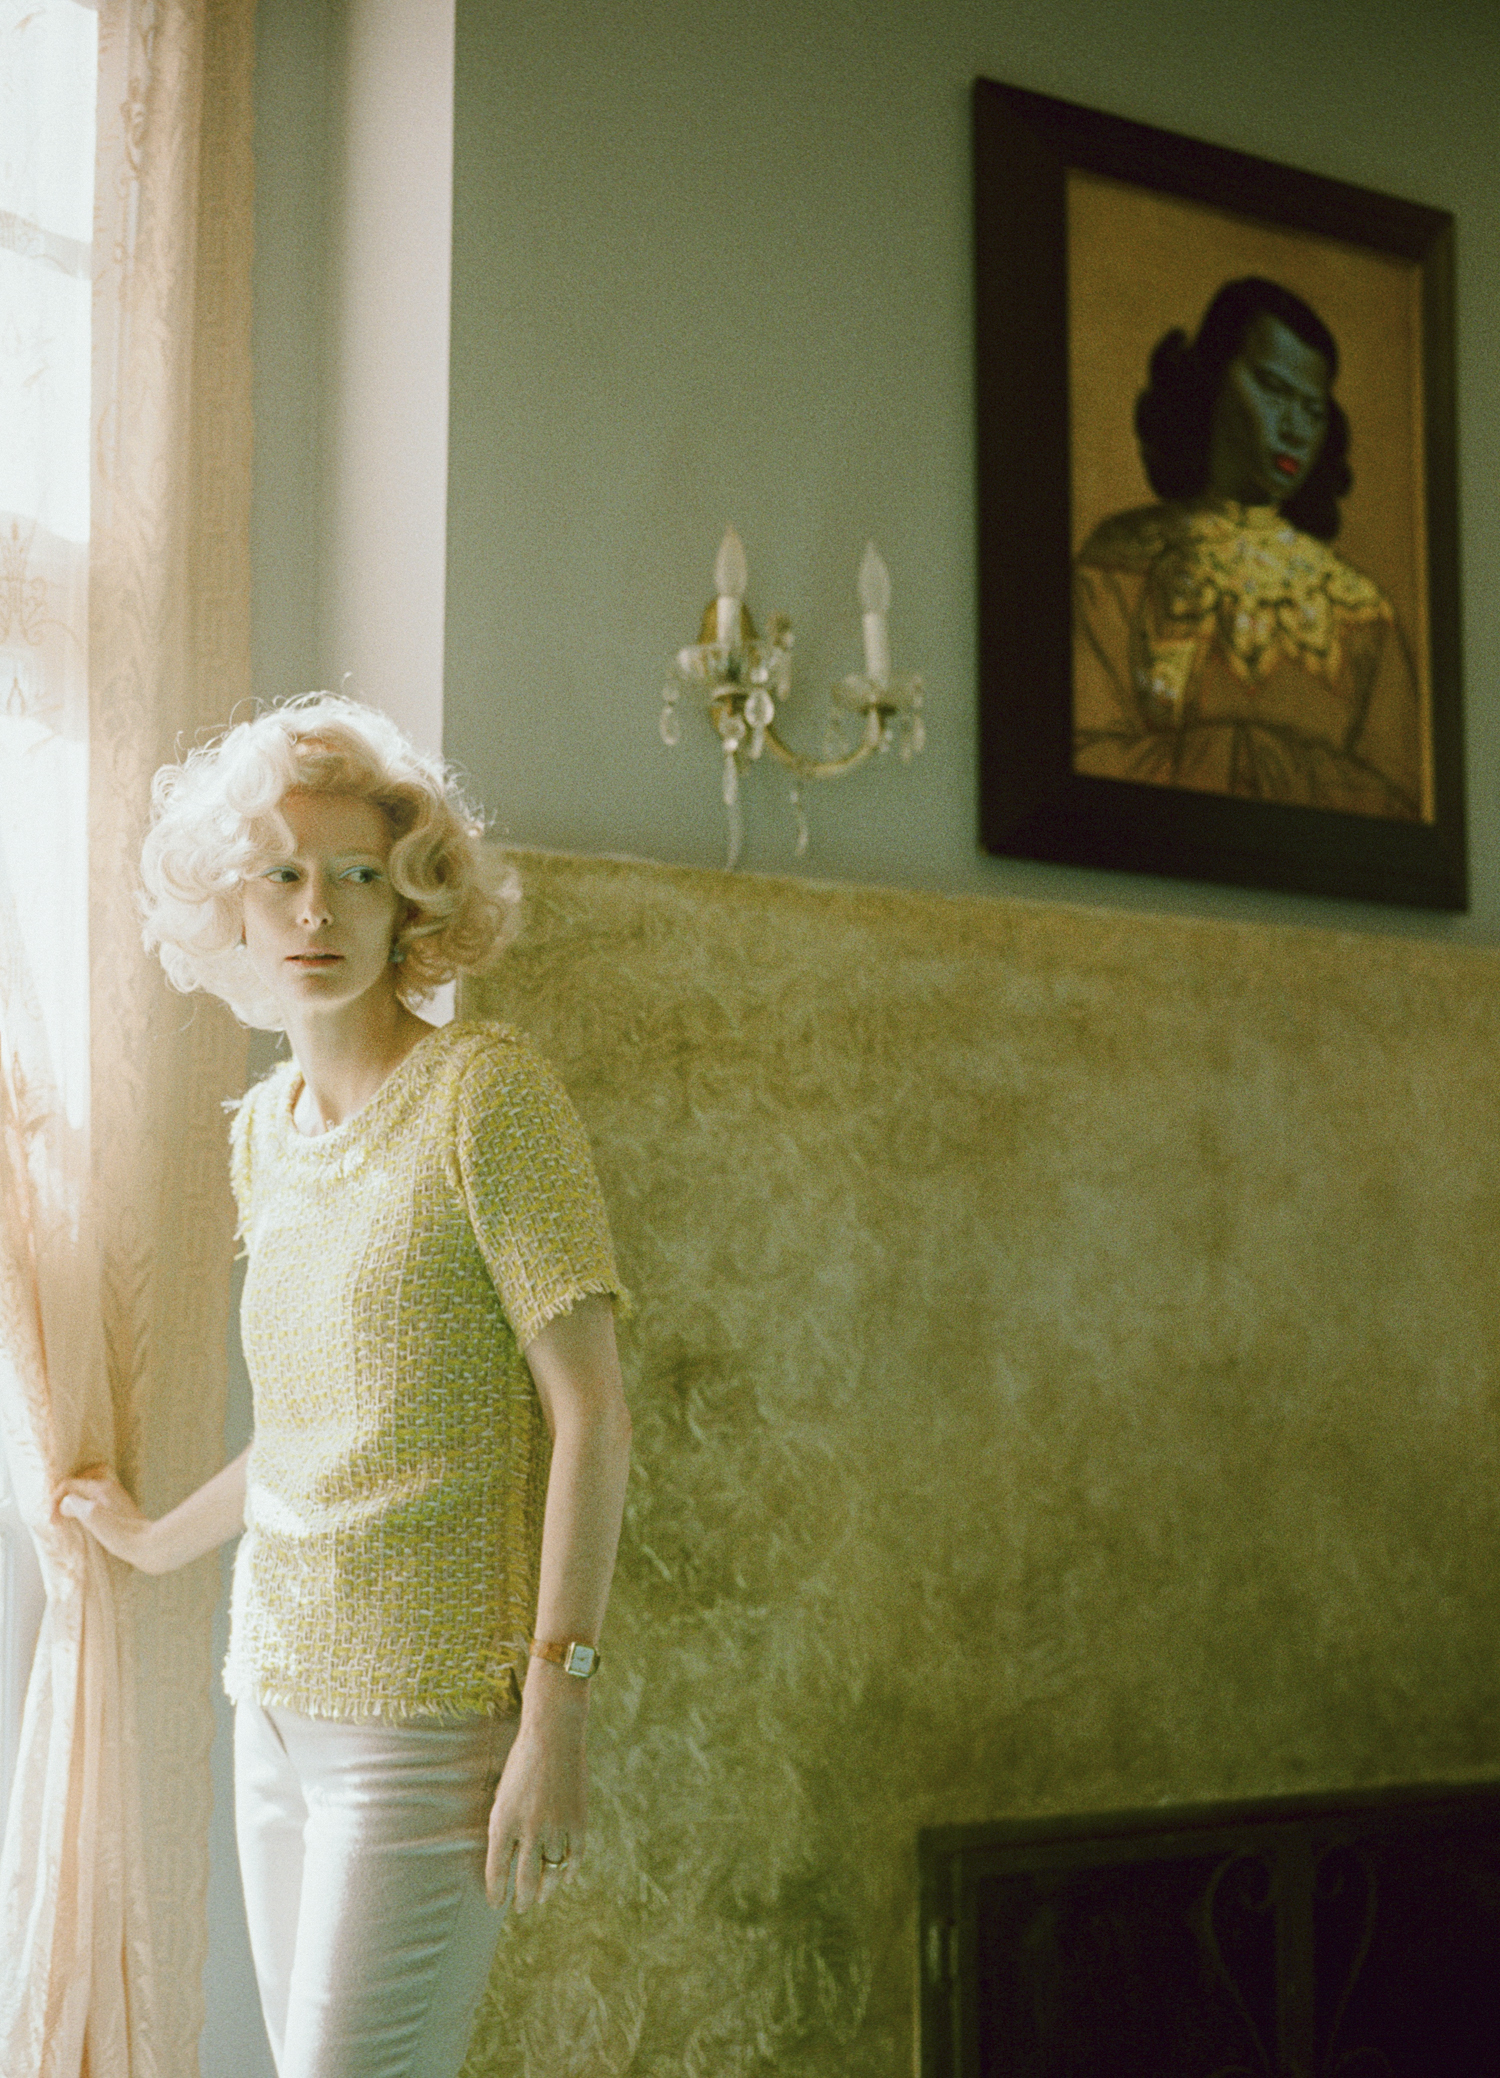 A photo taken by Director Floria Sigismondi on set of The Stars (Are Out Tonight), featuring Tilda Swinton